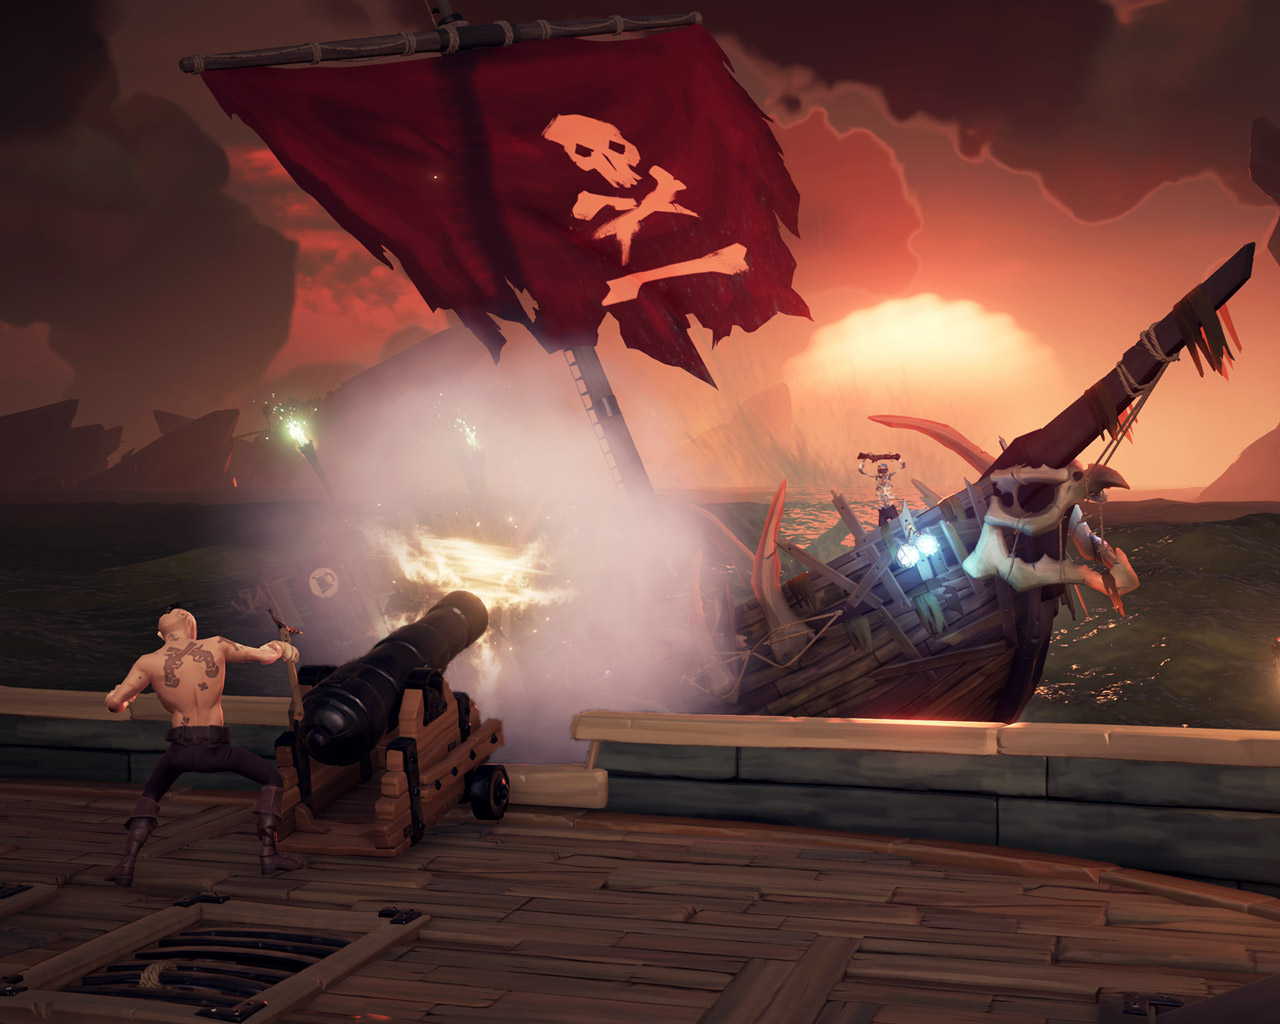 Sea of Thieves Wallpaper in 1280x1024